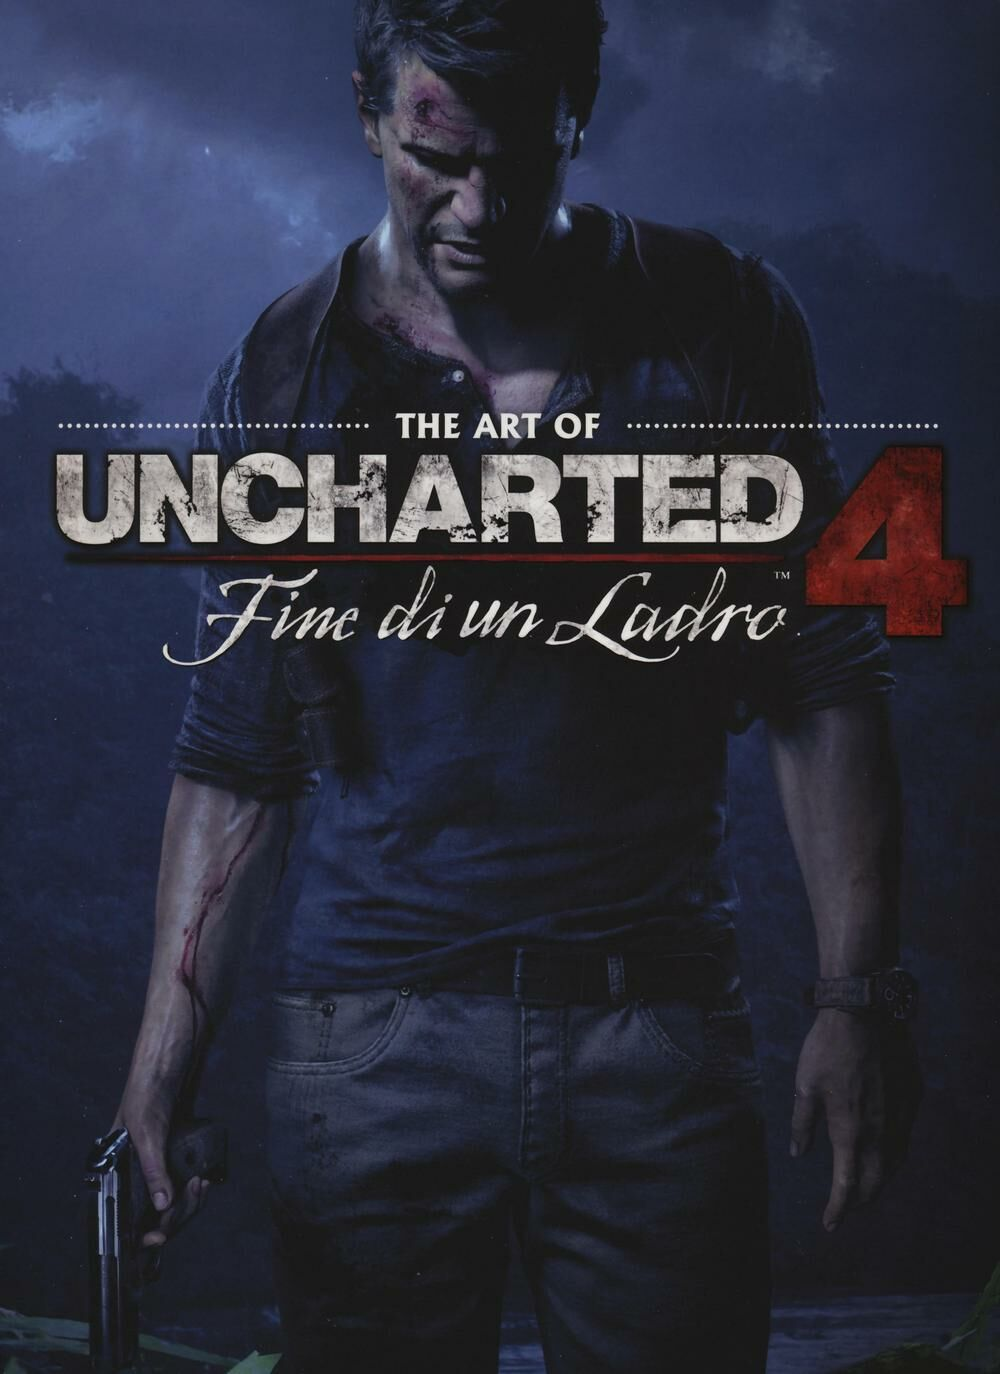 The art of uncharted 4. Fine di un ladro